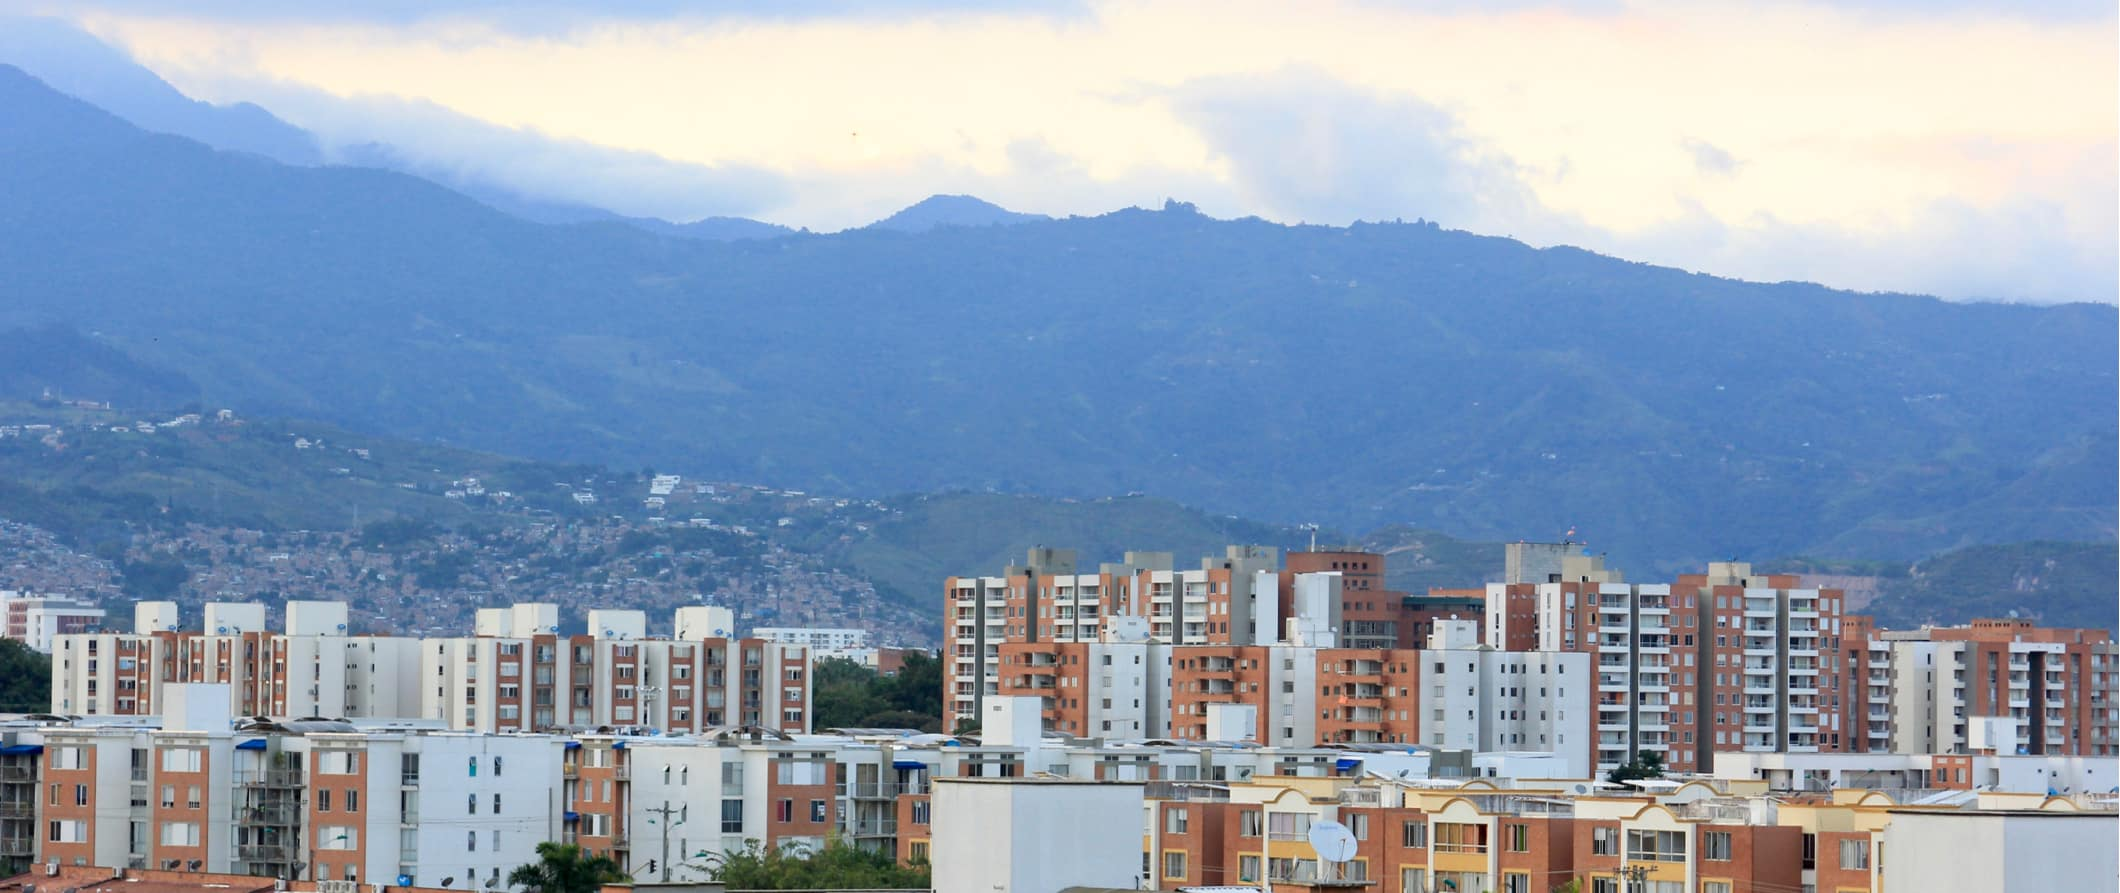 The skyline of Cali, Colombia with mountains in the distance